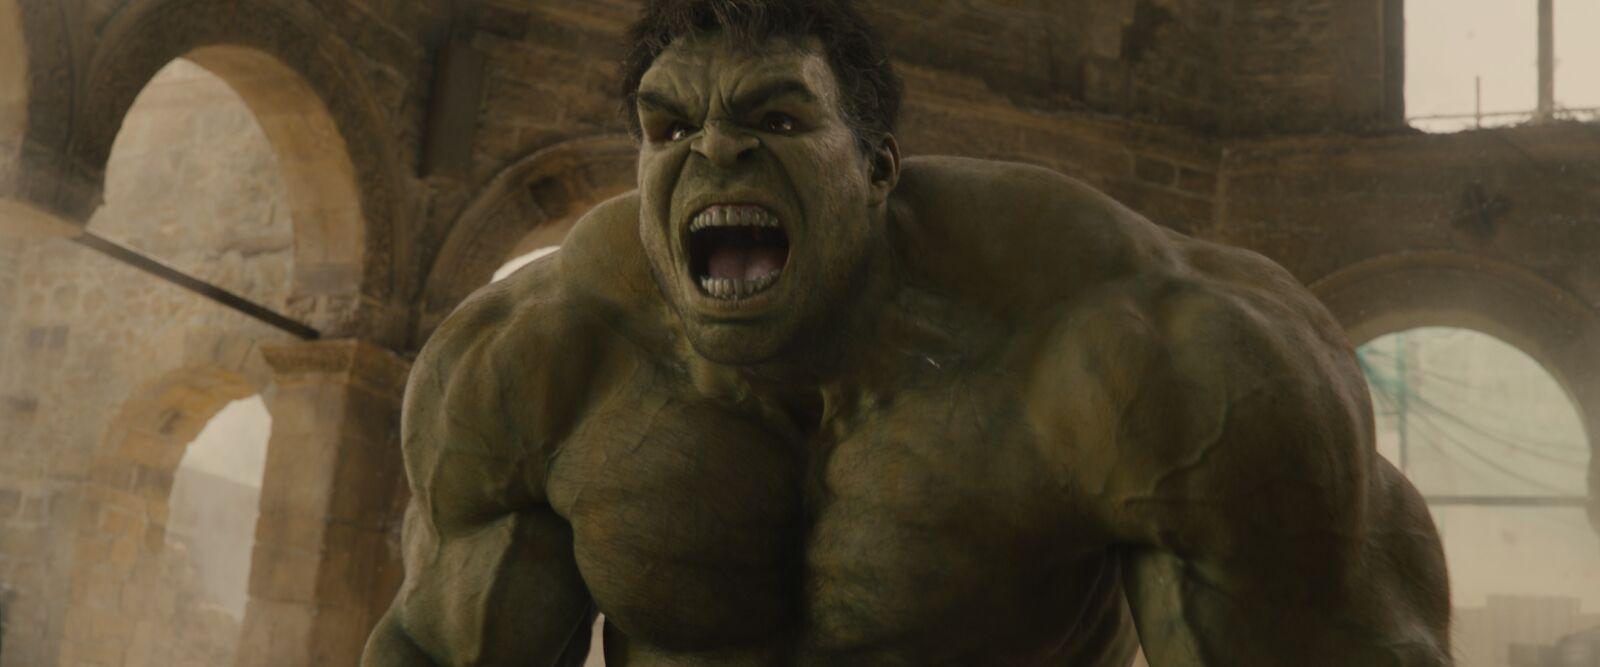 Edward Norton would have liked to see a darker take on the Hulk